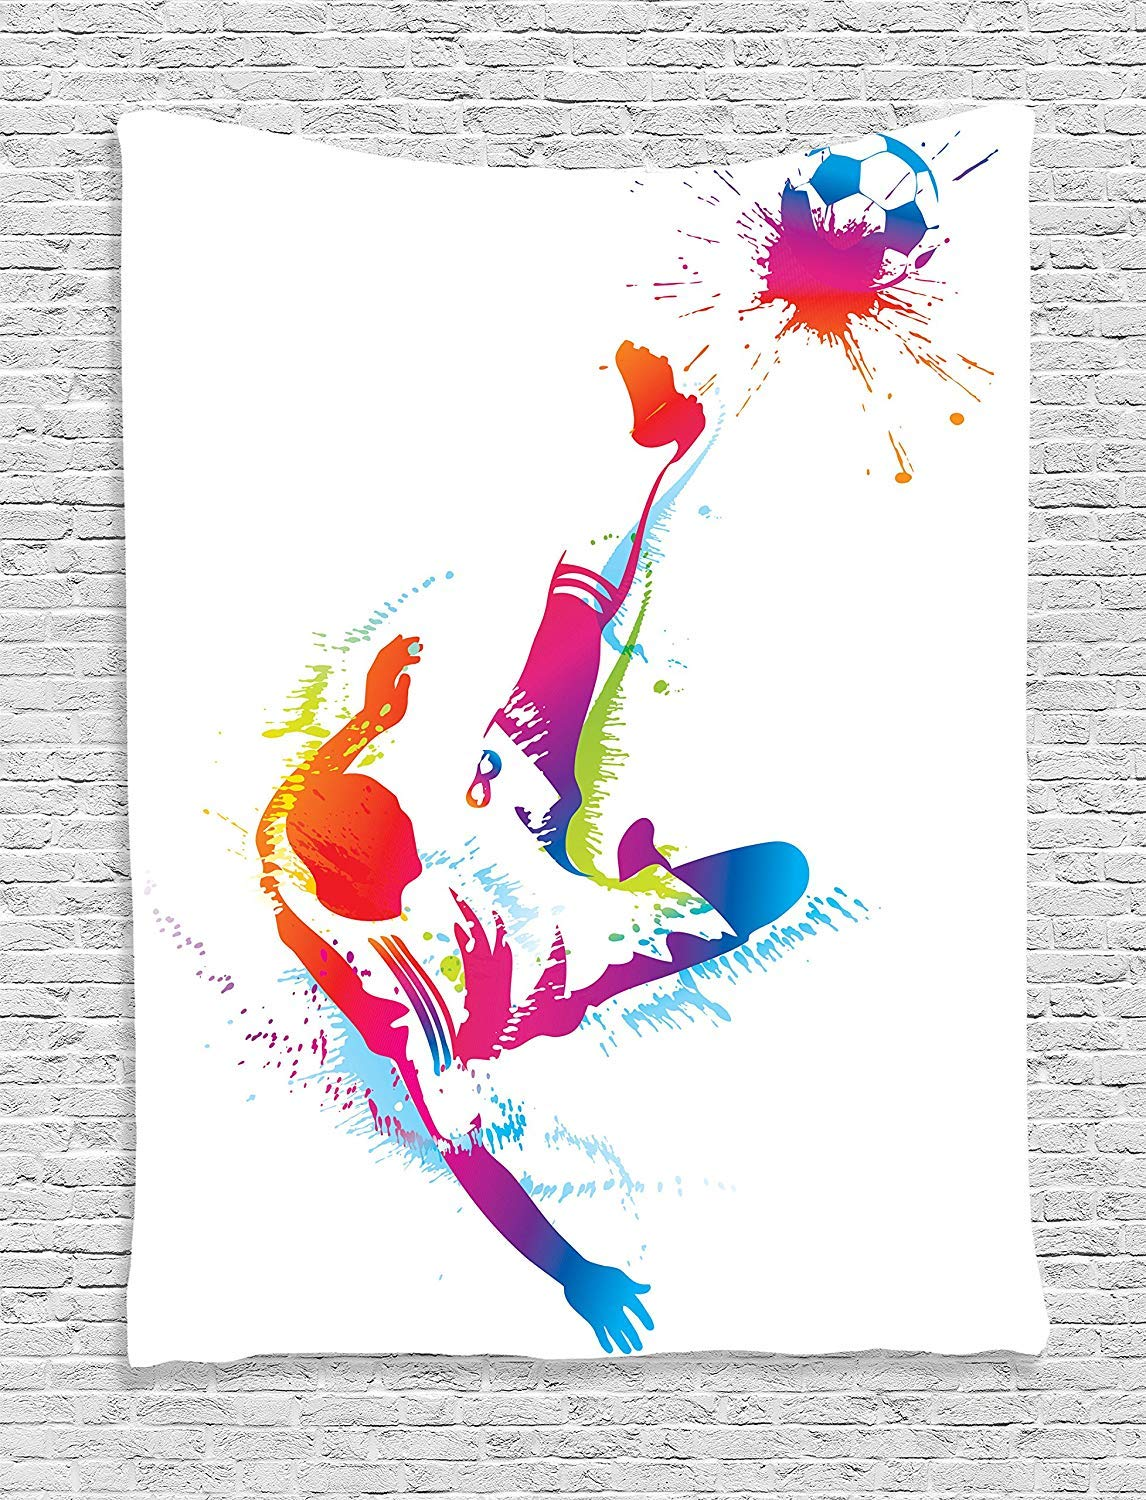 THndjsh Sports Decor Tapestry Wall Hanging, Soccer Man Kicks the Ball in the Air Digital Watercolors Success Energy Feet Illustration, Bedroom Living Room Dorm Decor, 60 W x 80 L Inches, Multi by THndjsh (Image #1)